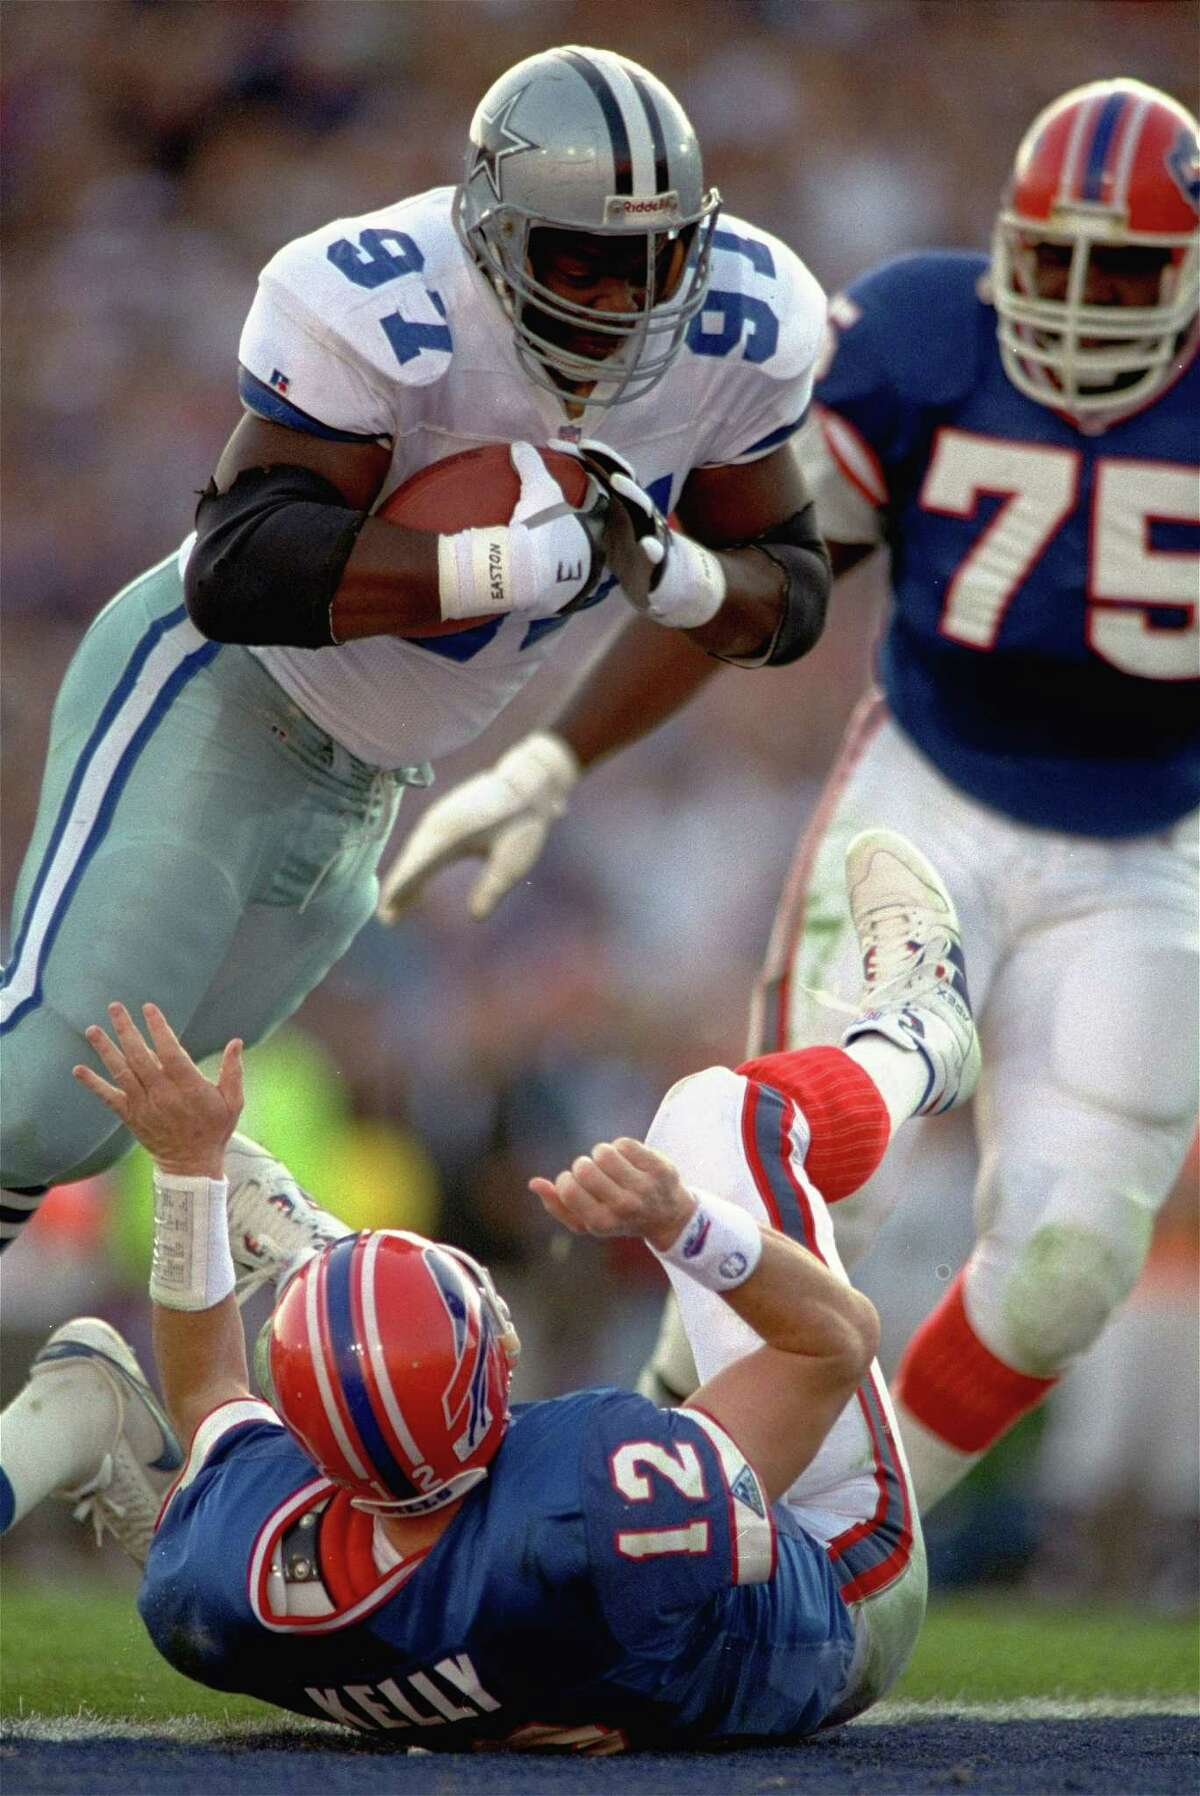 Dallas Cowboys defensive end Jimmie Jones flies over Buffalo Bills quarterback Jim Kelly for a touchdown after recovering Kelly's fumble in the first quarter of Super Bowl XXVII, January 31, 1993.